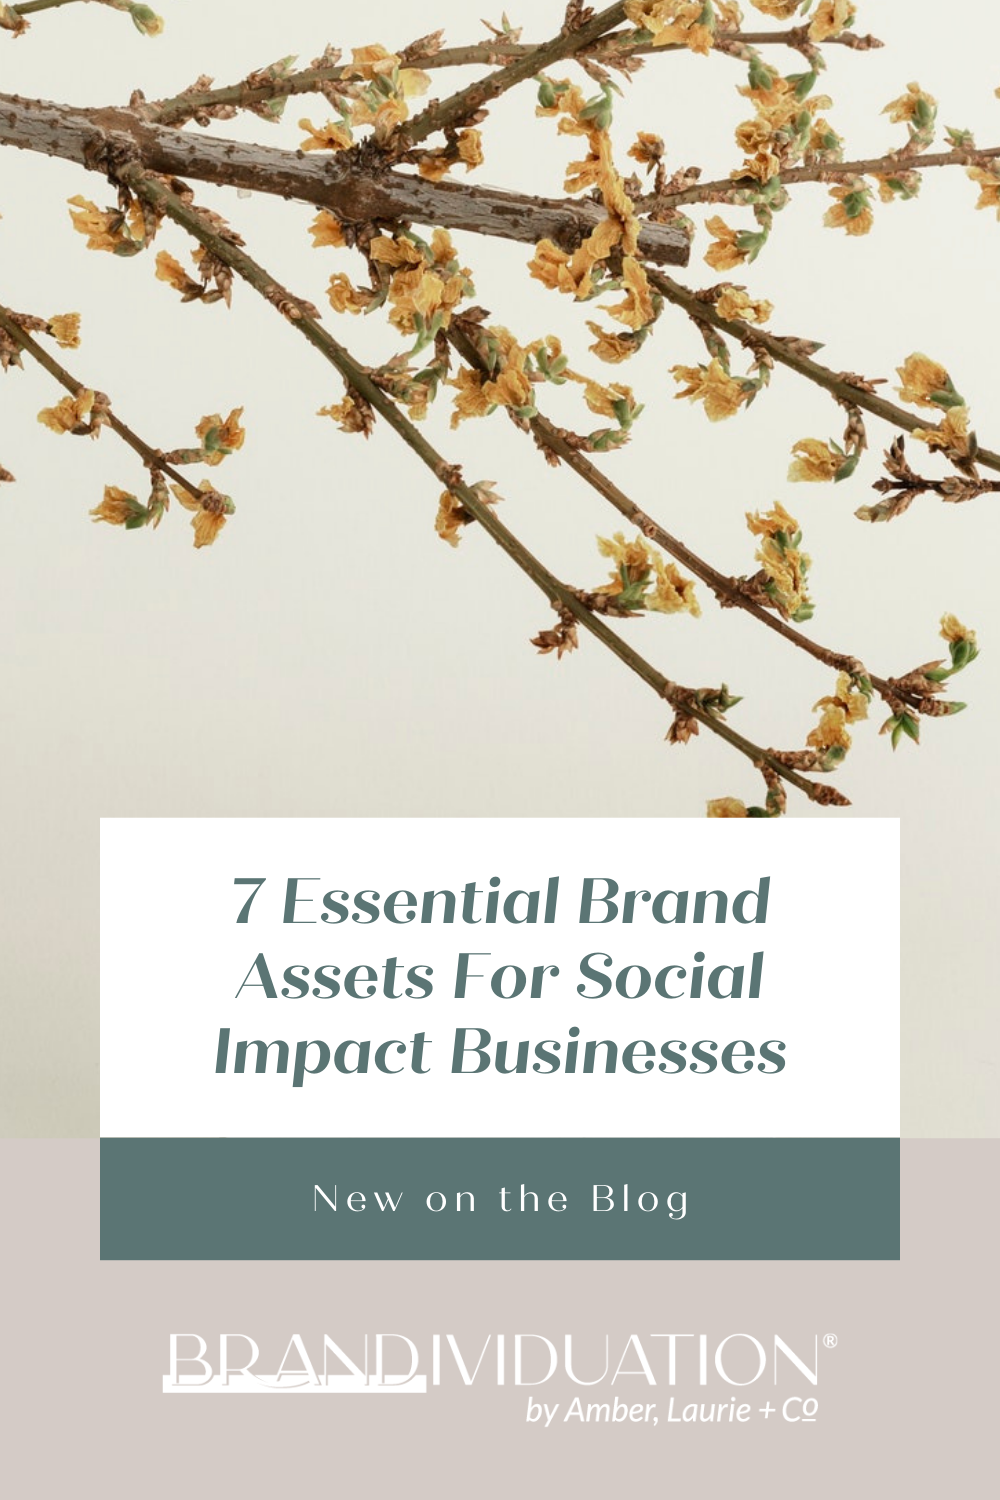 7 Essential Brand Assets For Social Impact Businesses